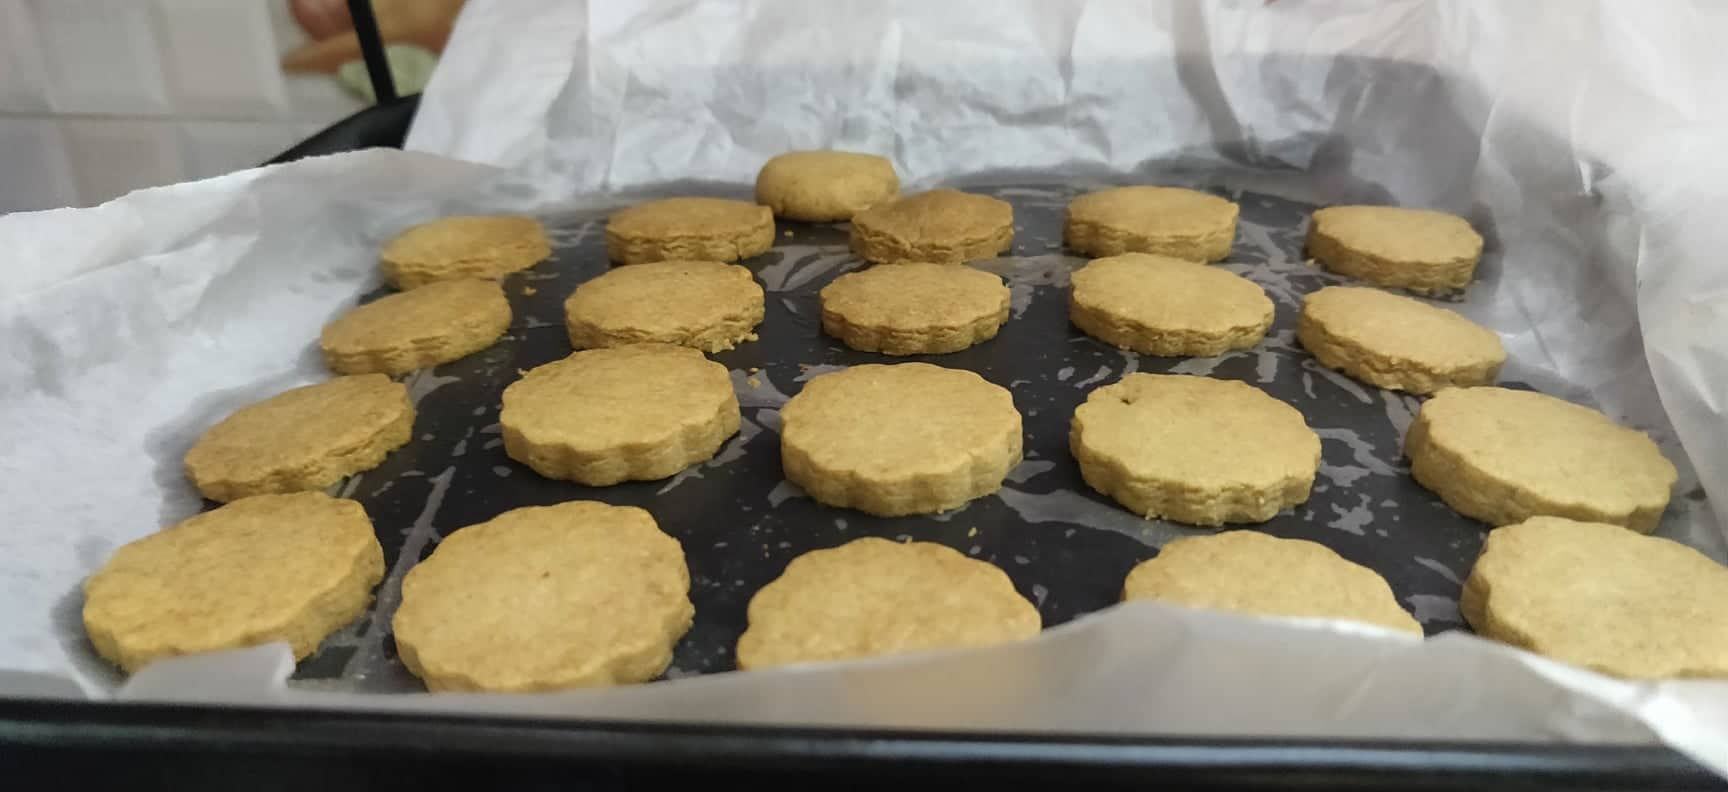 eggless_sugar_cookies - 80451262_1361477177349707_5167437739804590080_n